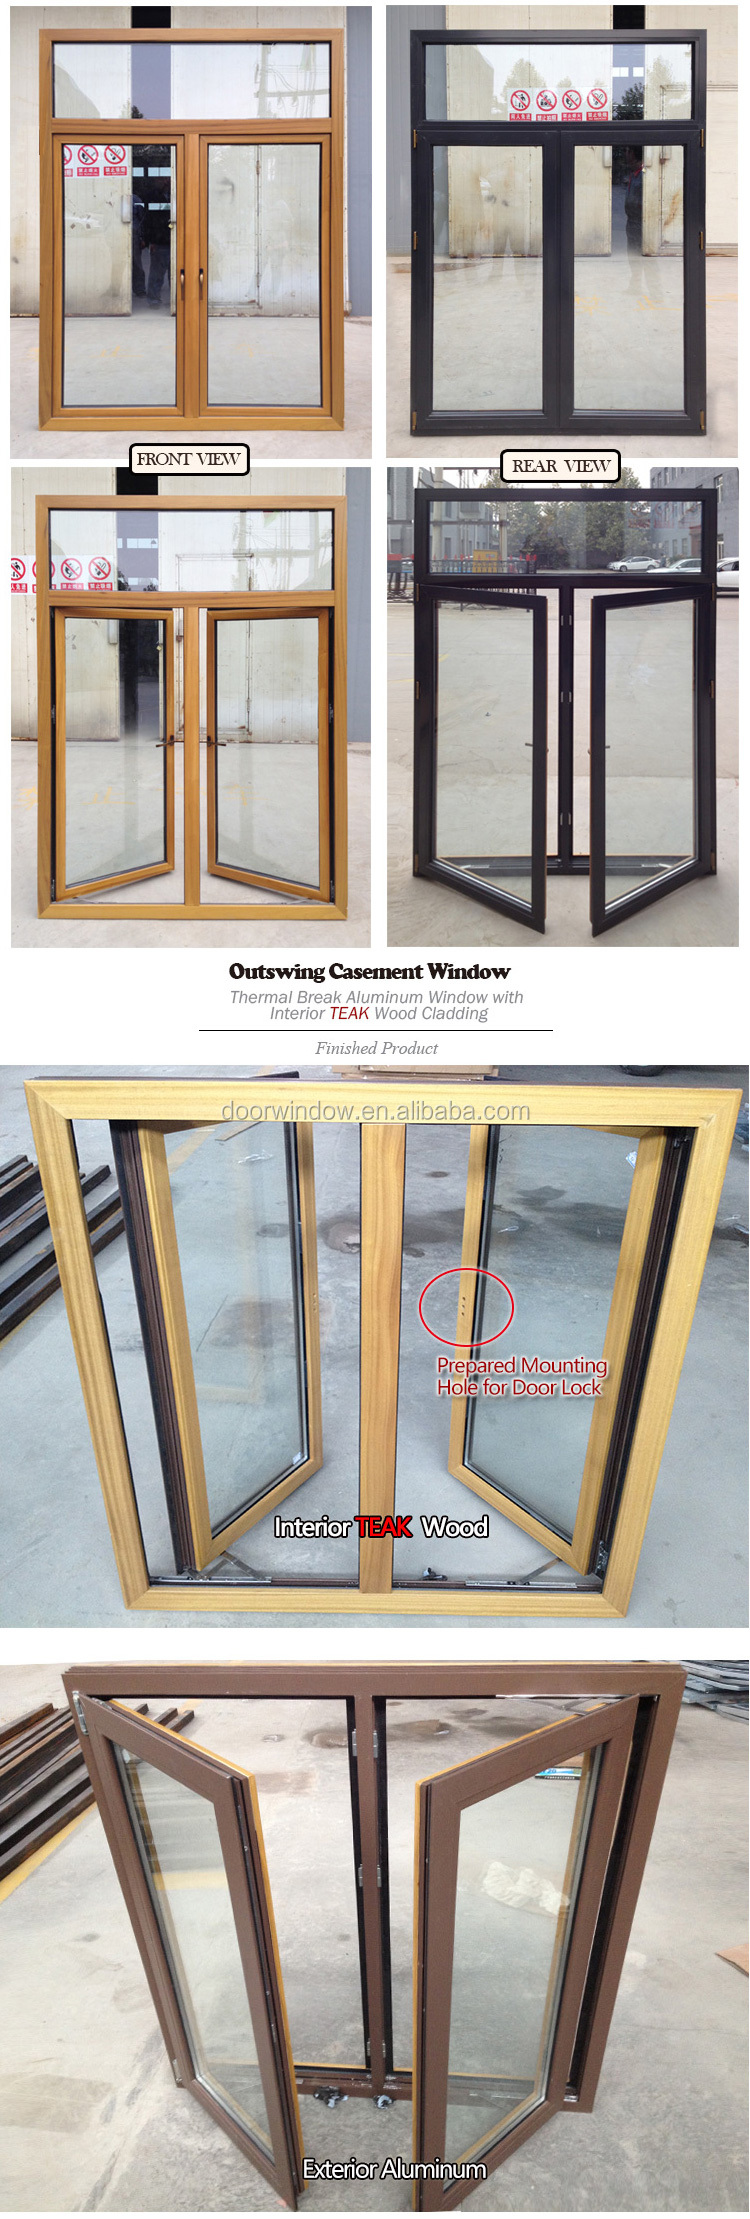 Teak wood main window designs French style open out windows